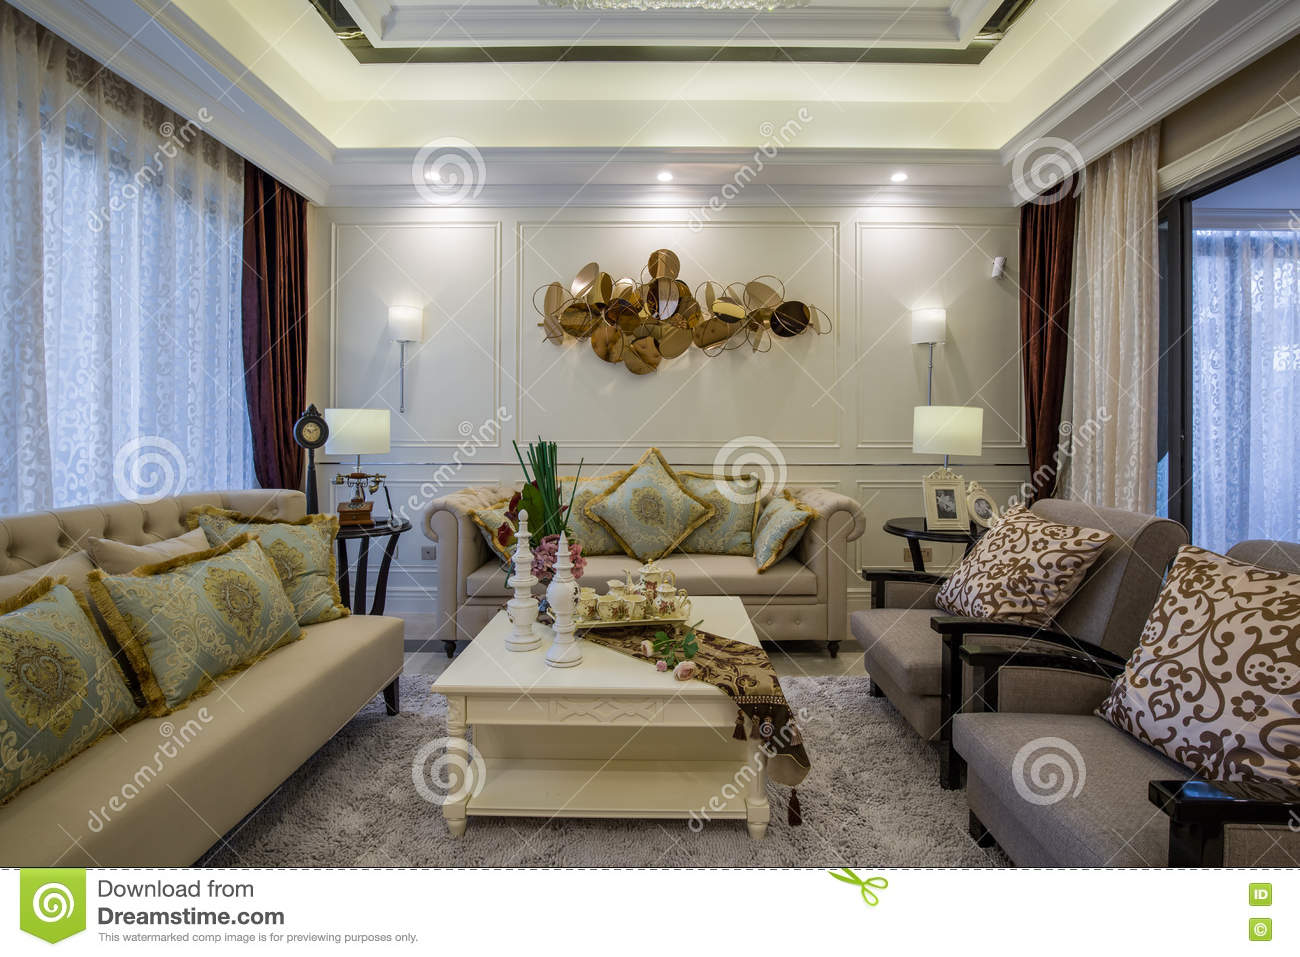 modern luxury interior home design parlor living room villa royalty free stock photography